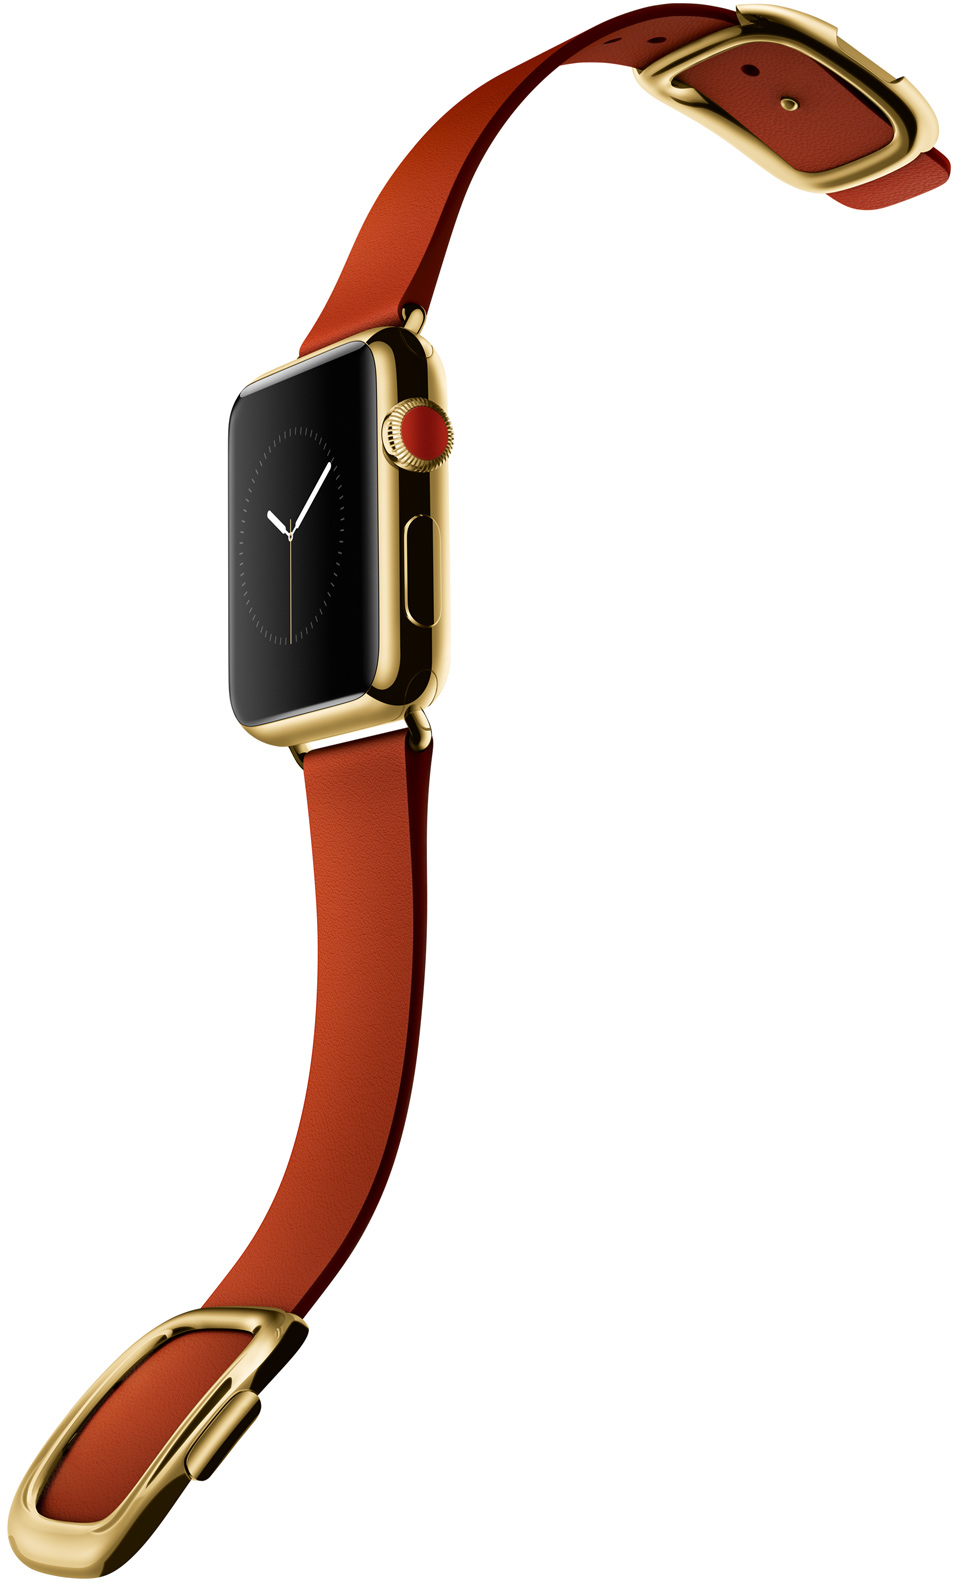 Apple Watch edition gold red buckle